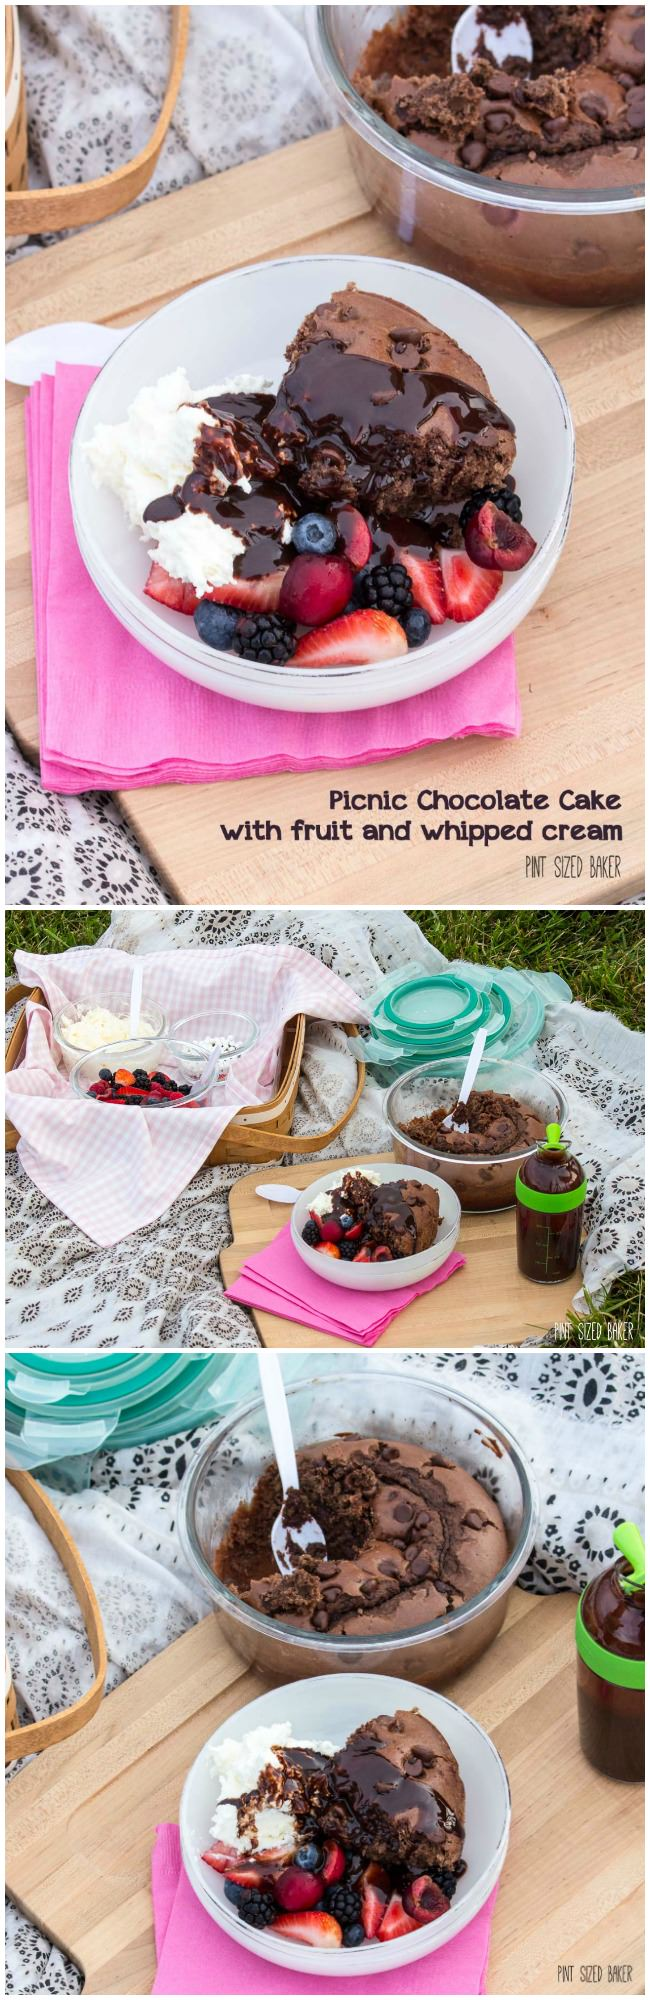 This Picnic Chocolate Cake is easy to make and is great when topped with fresh fruit and whipped cream. Make it for your next picnic.